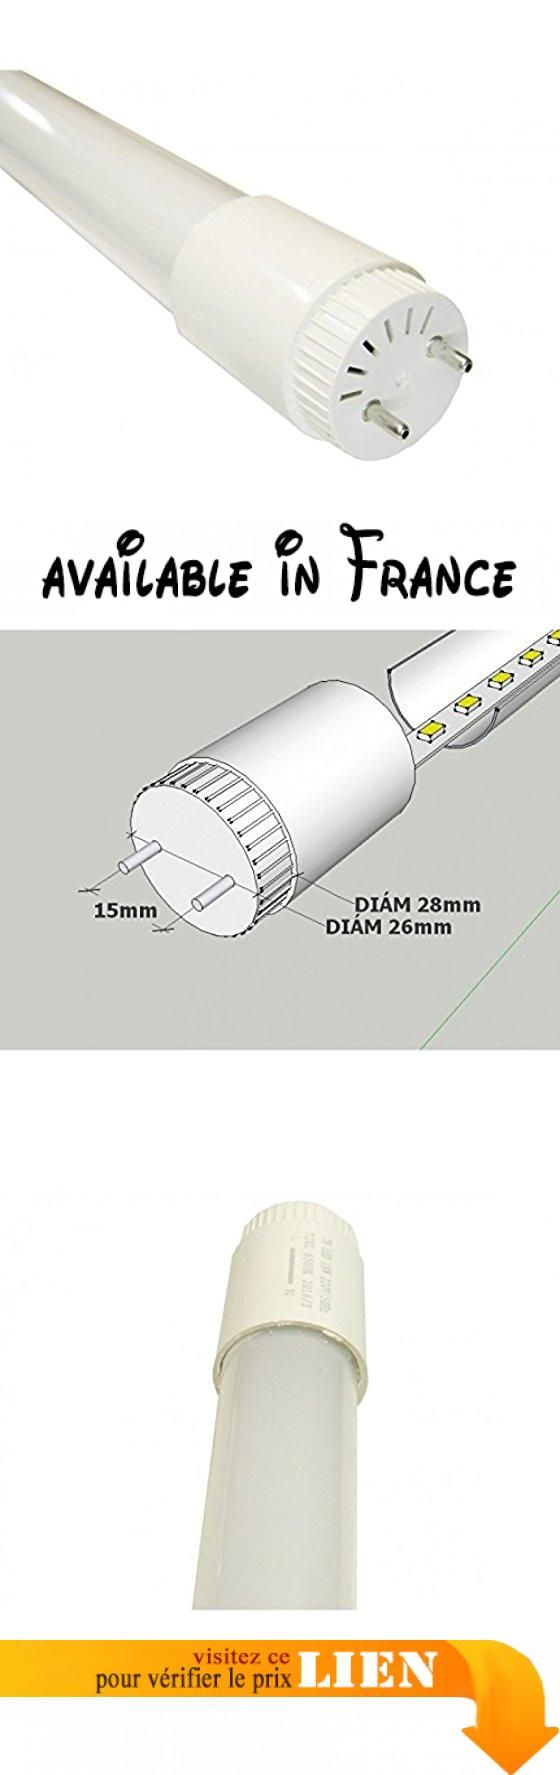 Tube Led 120 Stunning Tube Led 120 With Tube Led 120 Cool